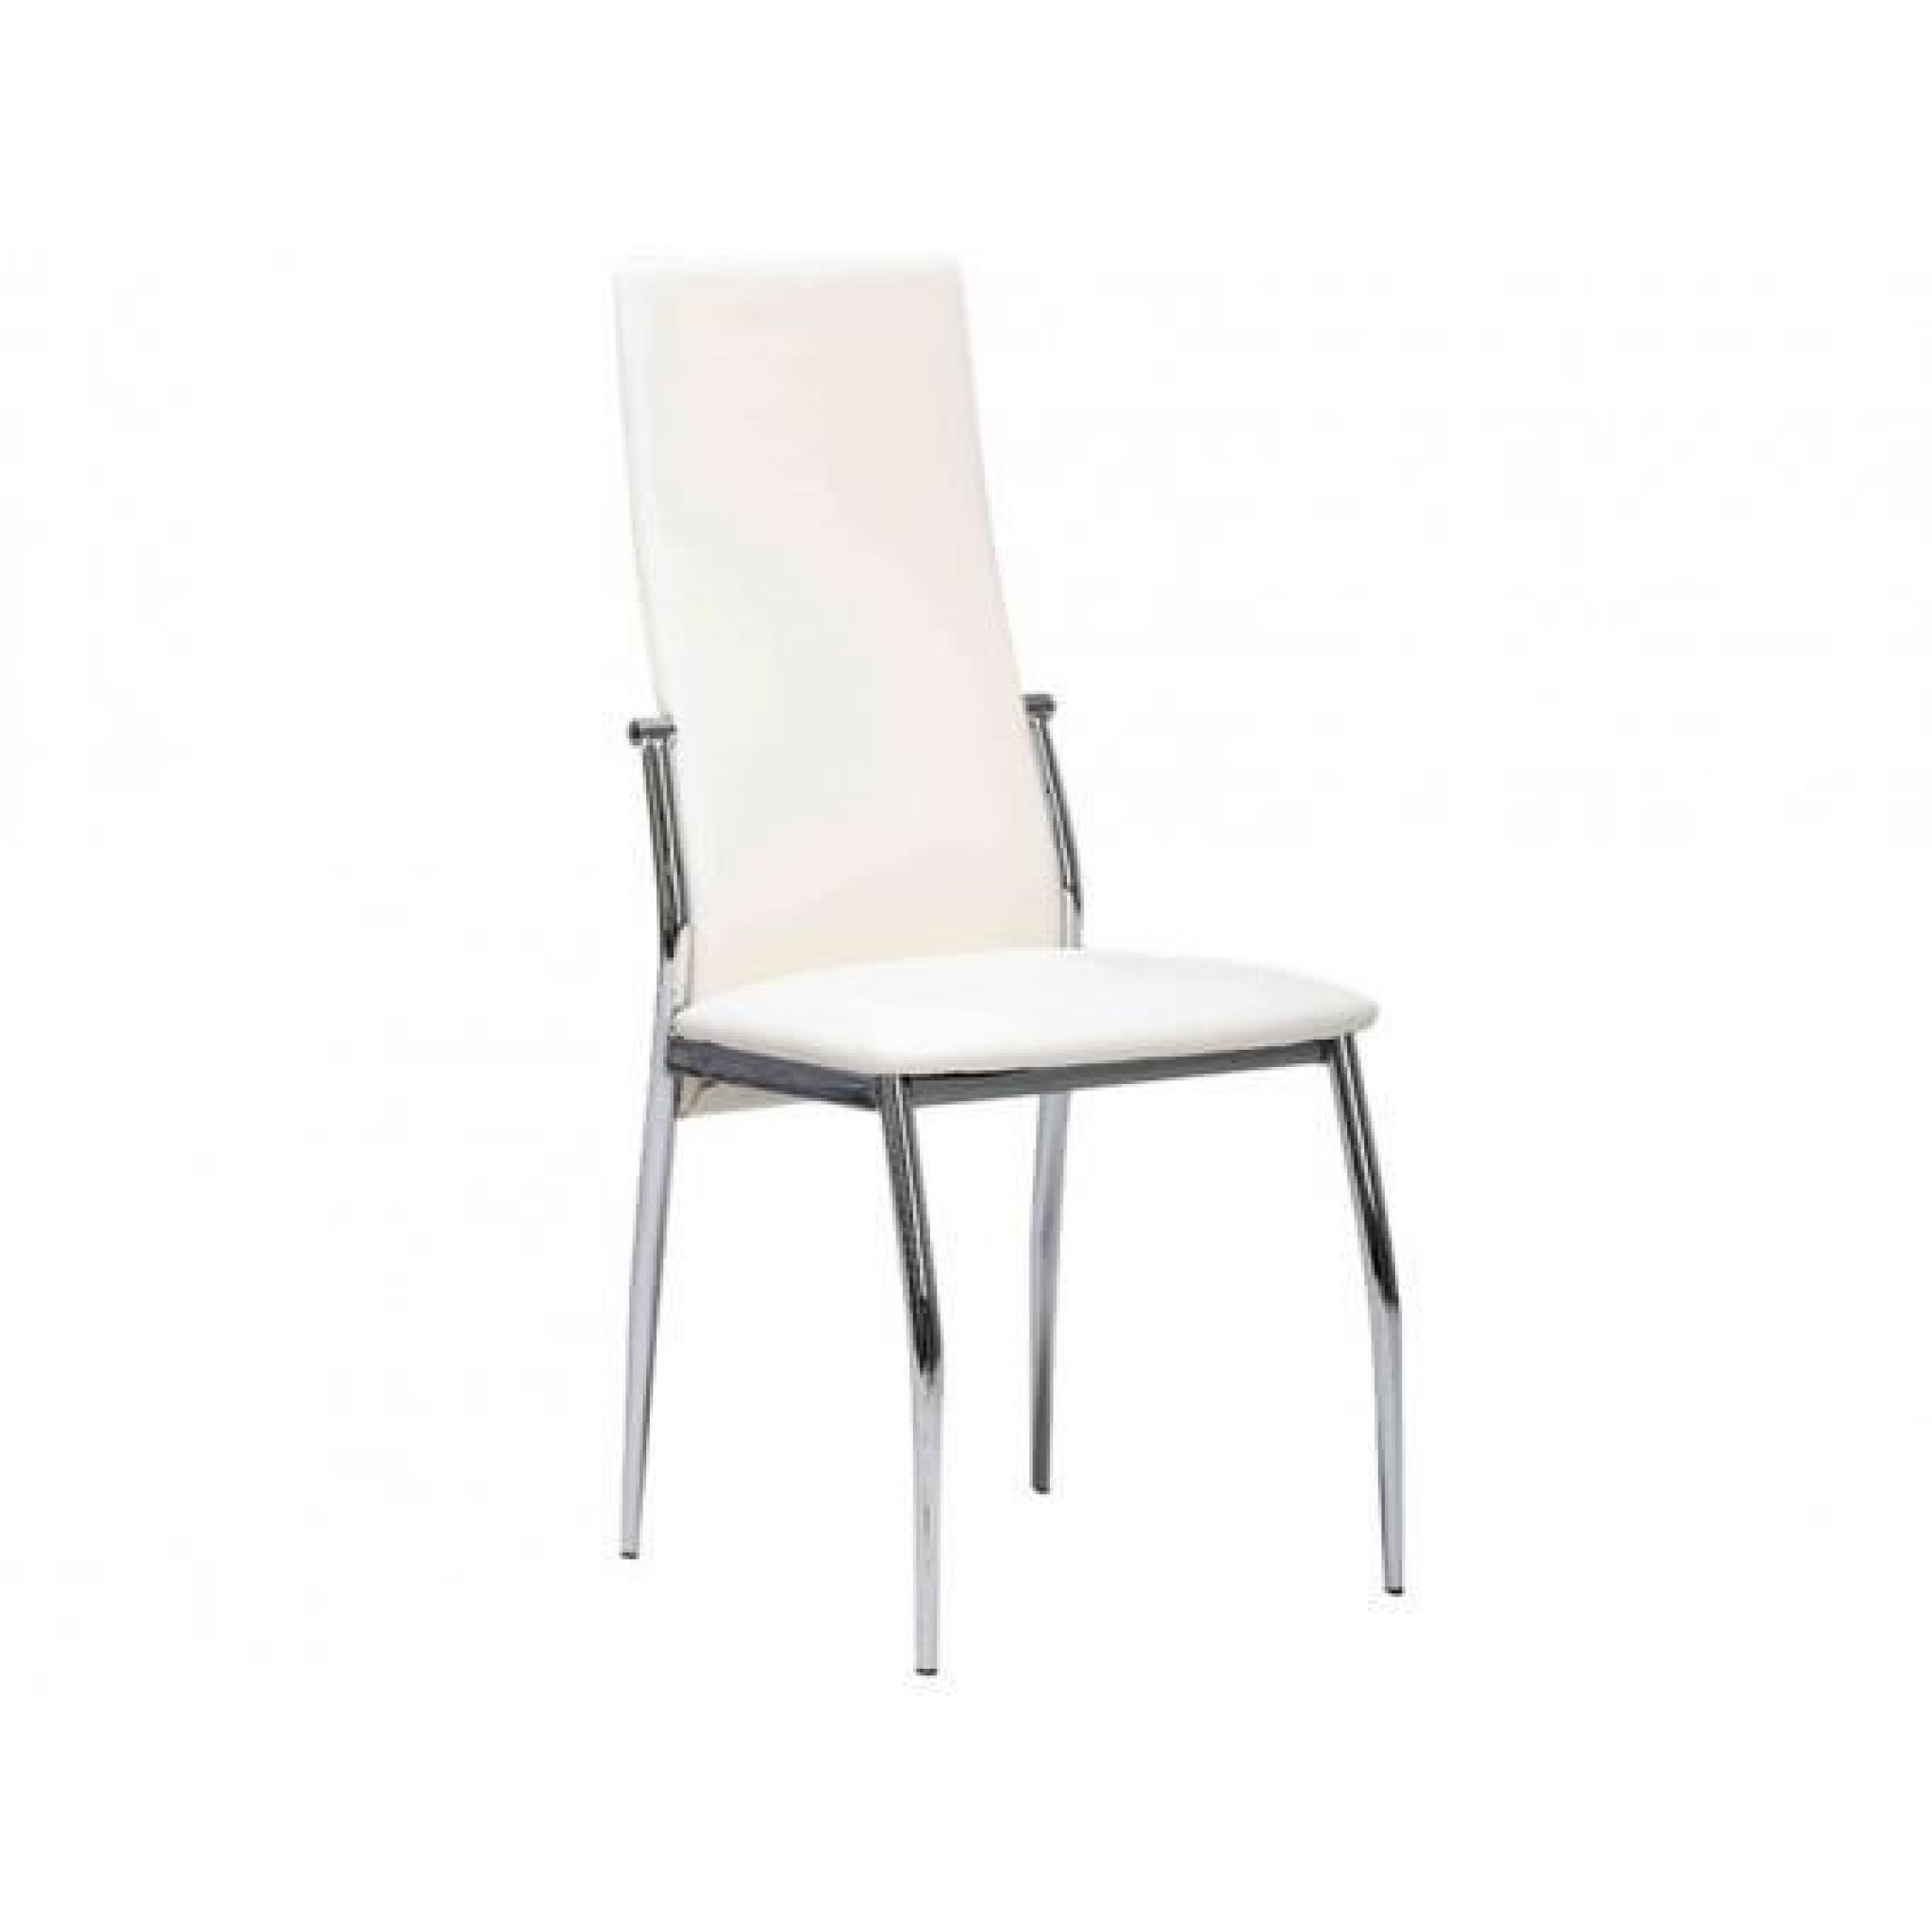 city lot 6 chaises blanches achat vente chaise salle a. Black Bedroom Furniture Sets. Home Design Ideas